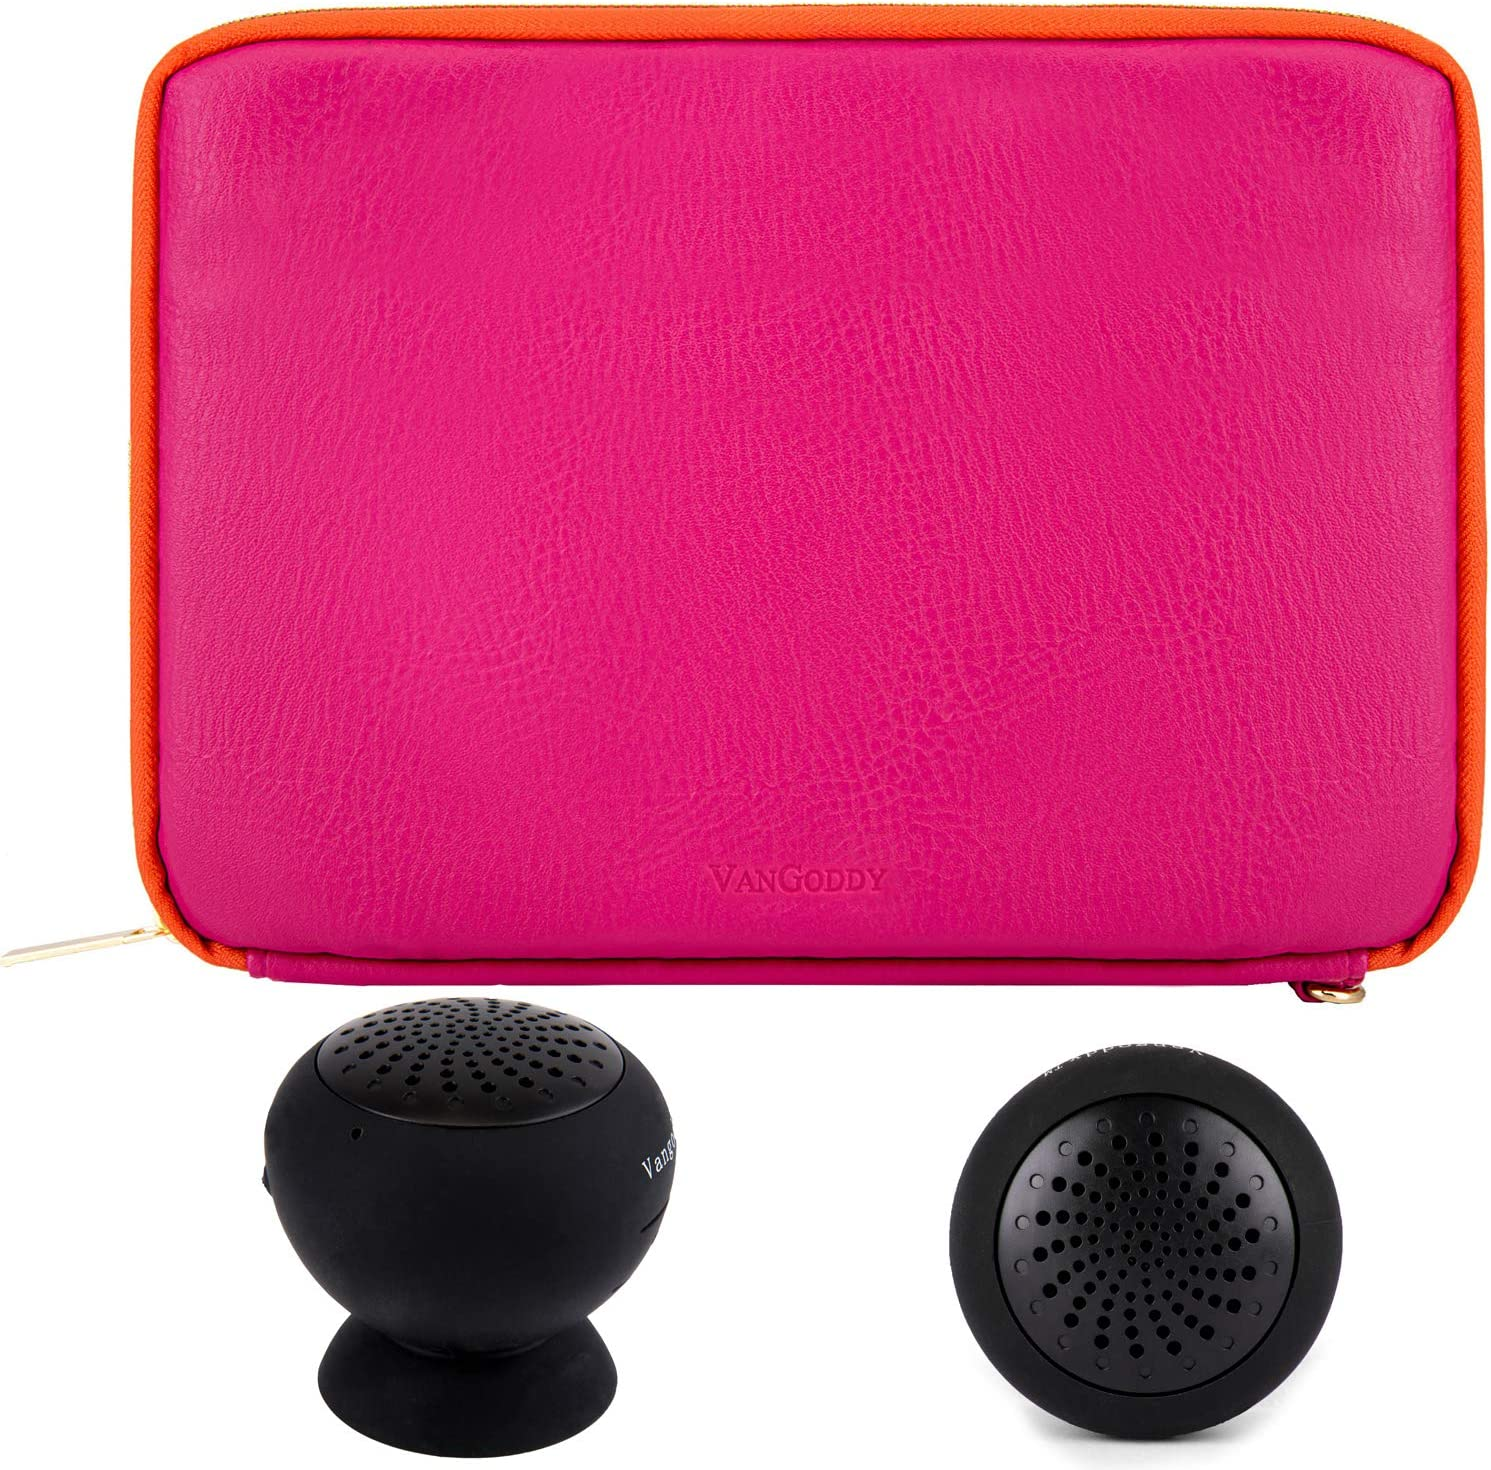 Amazon.com: VanGoddy Wireless Speaker and Magenta Orange ...